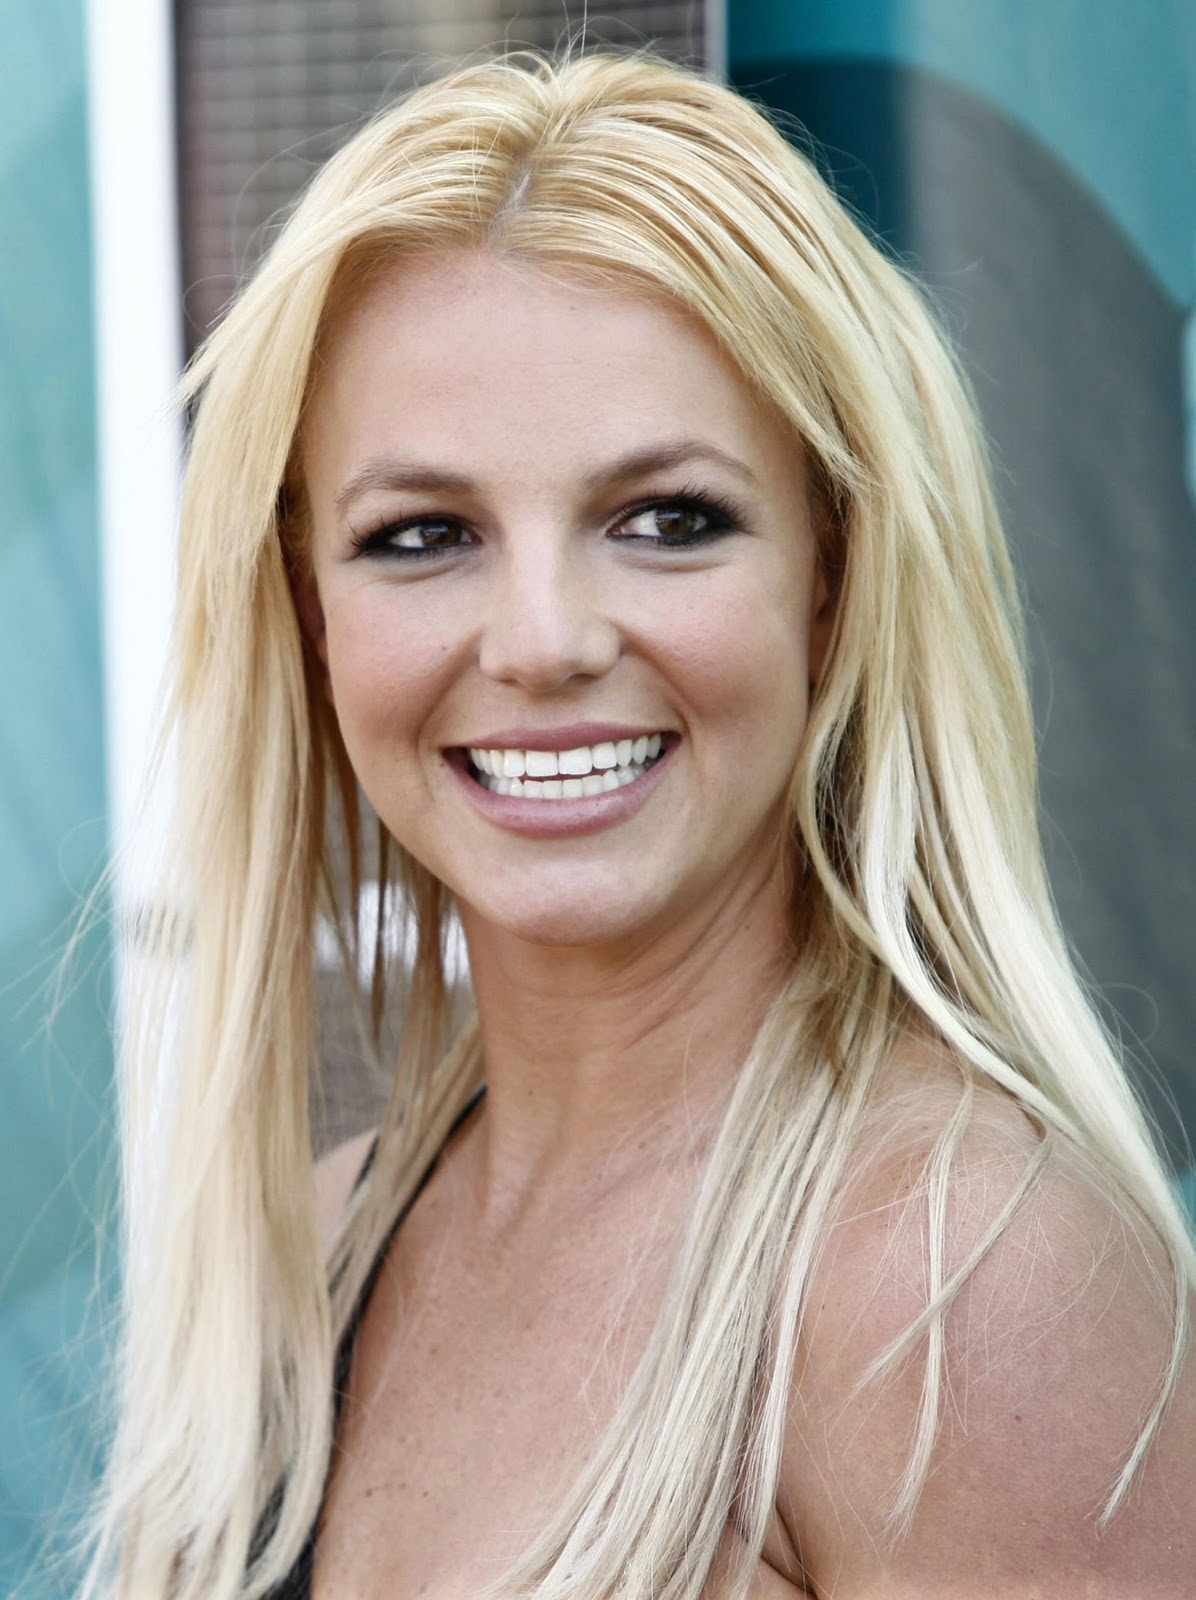 http://3.bp.blogspot.com/-pJ42NwB-s5I/Tp2uGS57LNI/AAAAAAAAAgk/4iGqQ8On5bY/s1600/britney+spears+2011+two.jpg